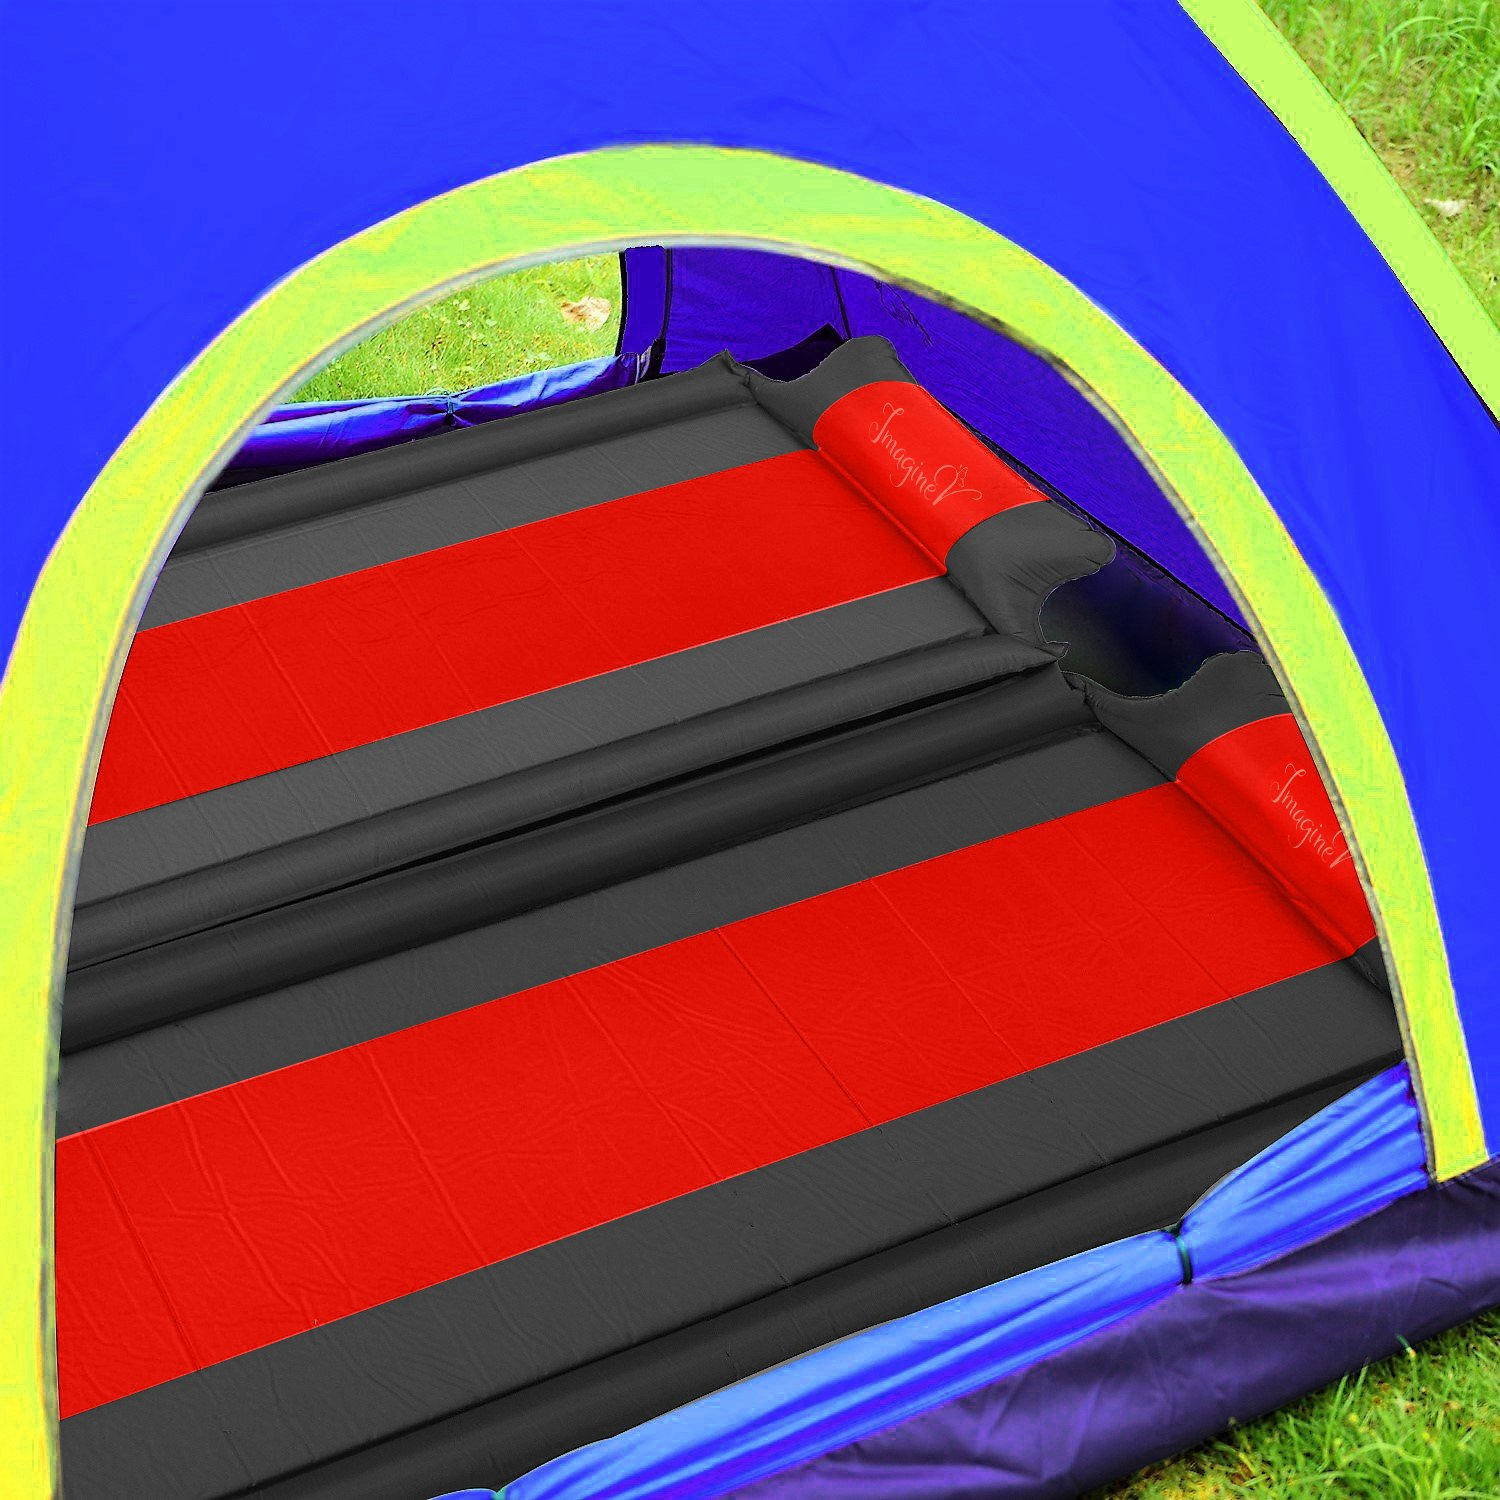 Self Inflating Sleeping Pad With Pillow & Armrests, Inflatable Camping Mat & Carrying Storage Bag-Comfortable Single Air Mattress Pad For Camping, Hiking, Backpacking, Sleepover, Travel. ImagineV